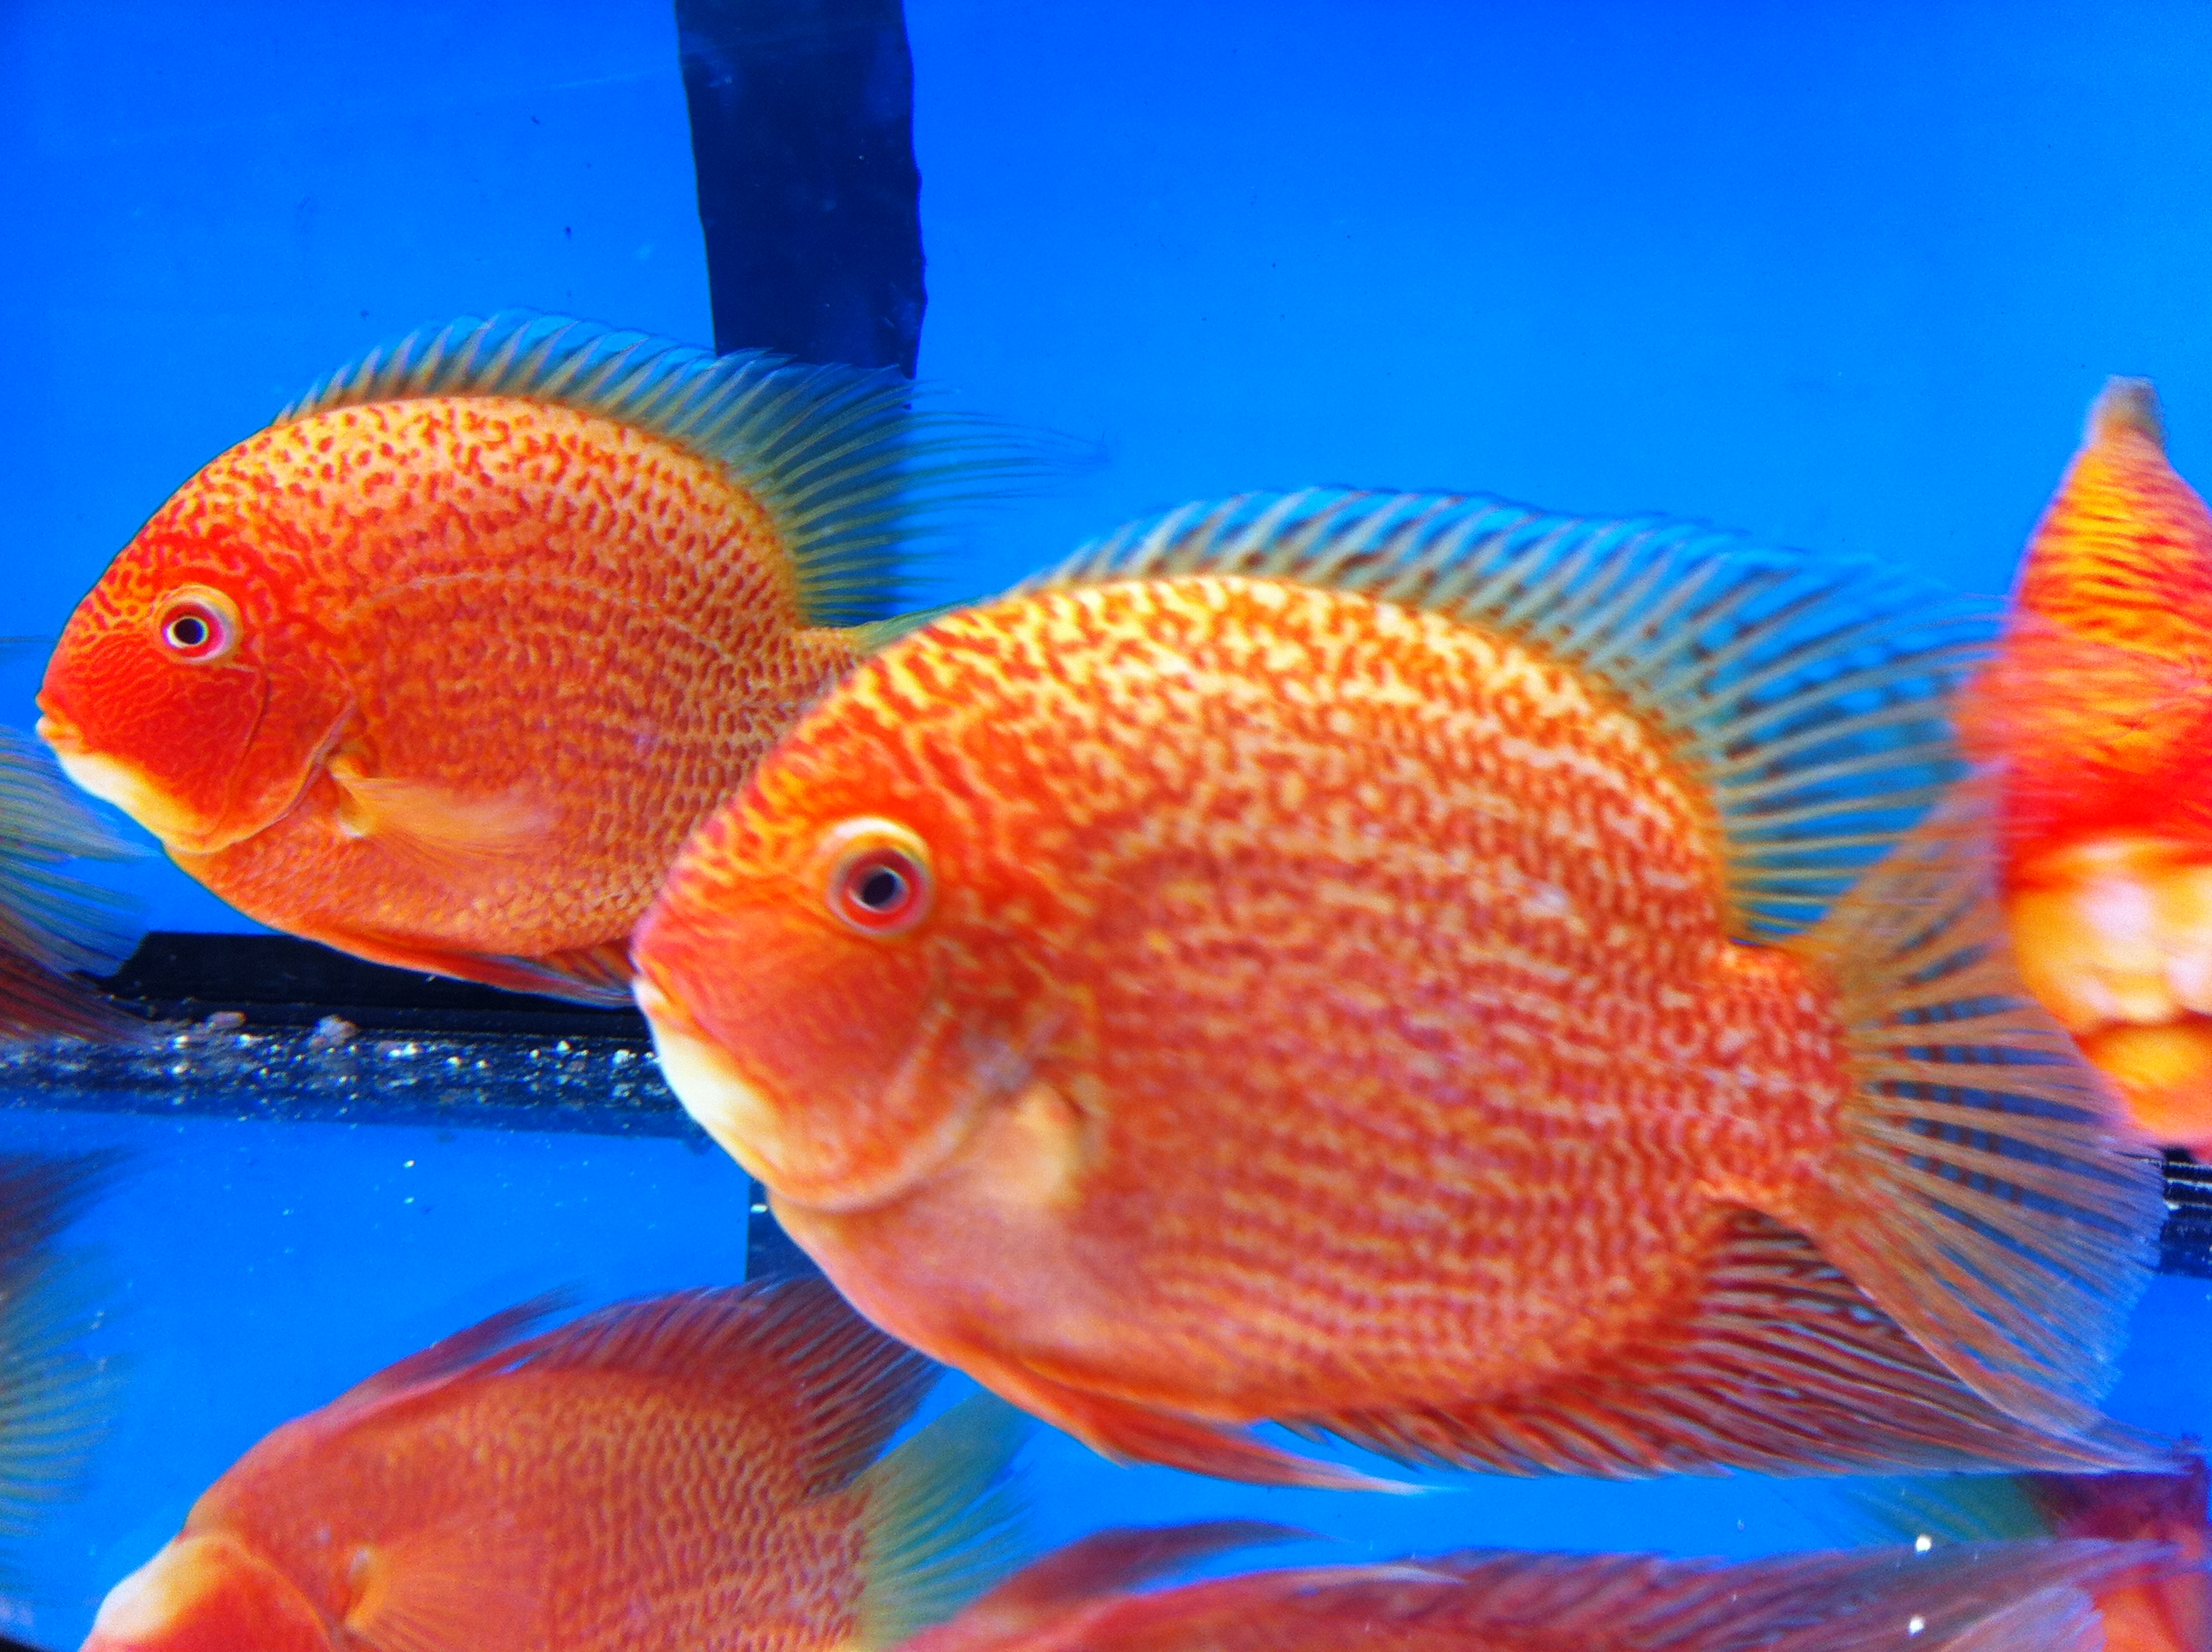 Fish for coldwater aquarium - Severum